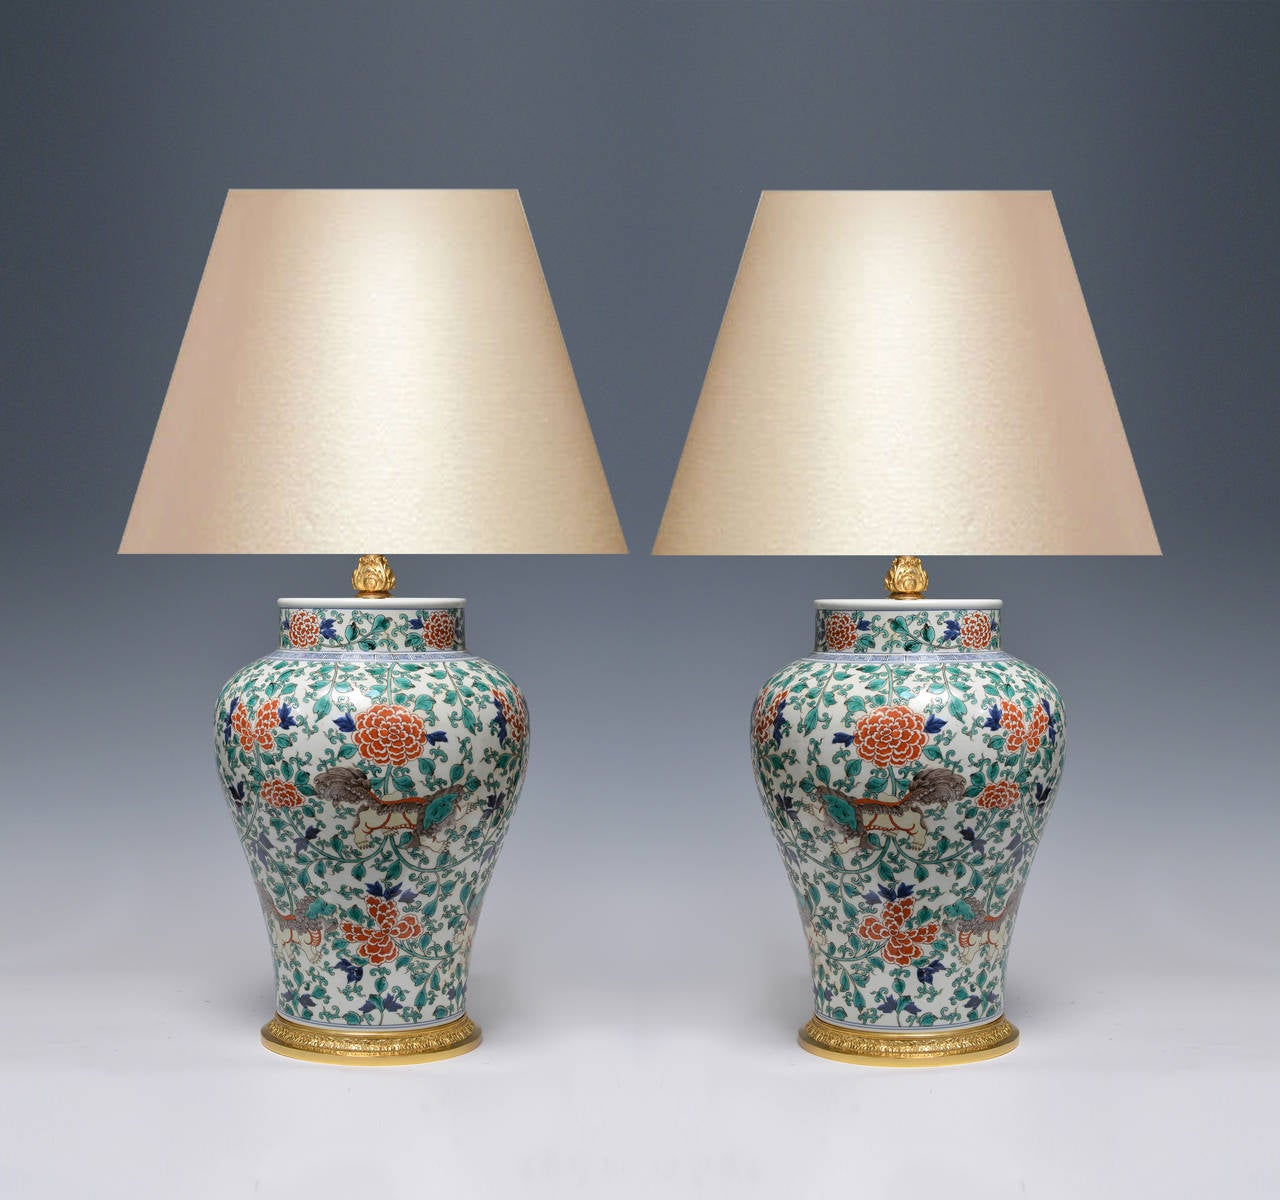 Pair of fine painted pink background famille verte porcelain lamps with fine cast gilt bronze bases, with foo lions and flower blossom decoration. (Lampshade not included).